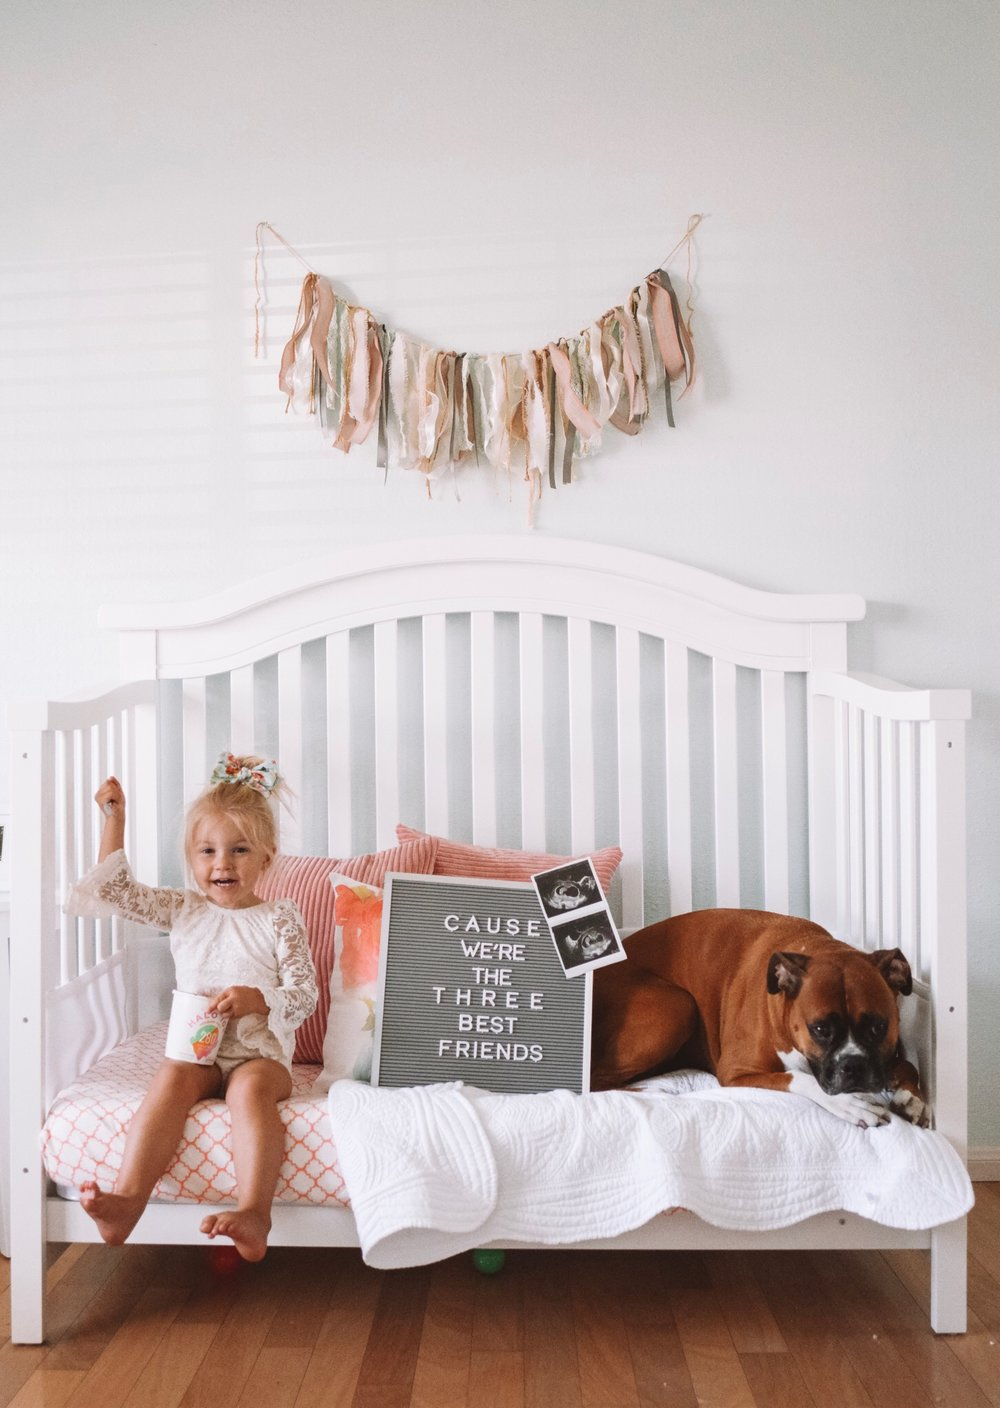 Cute Pregnancy Announcement for Second Baby - Cute Pregnancy Announcements with Dogs